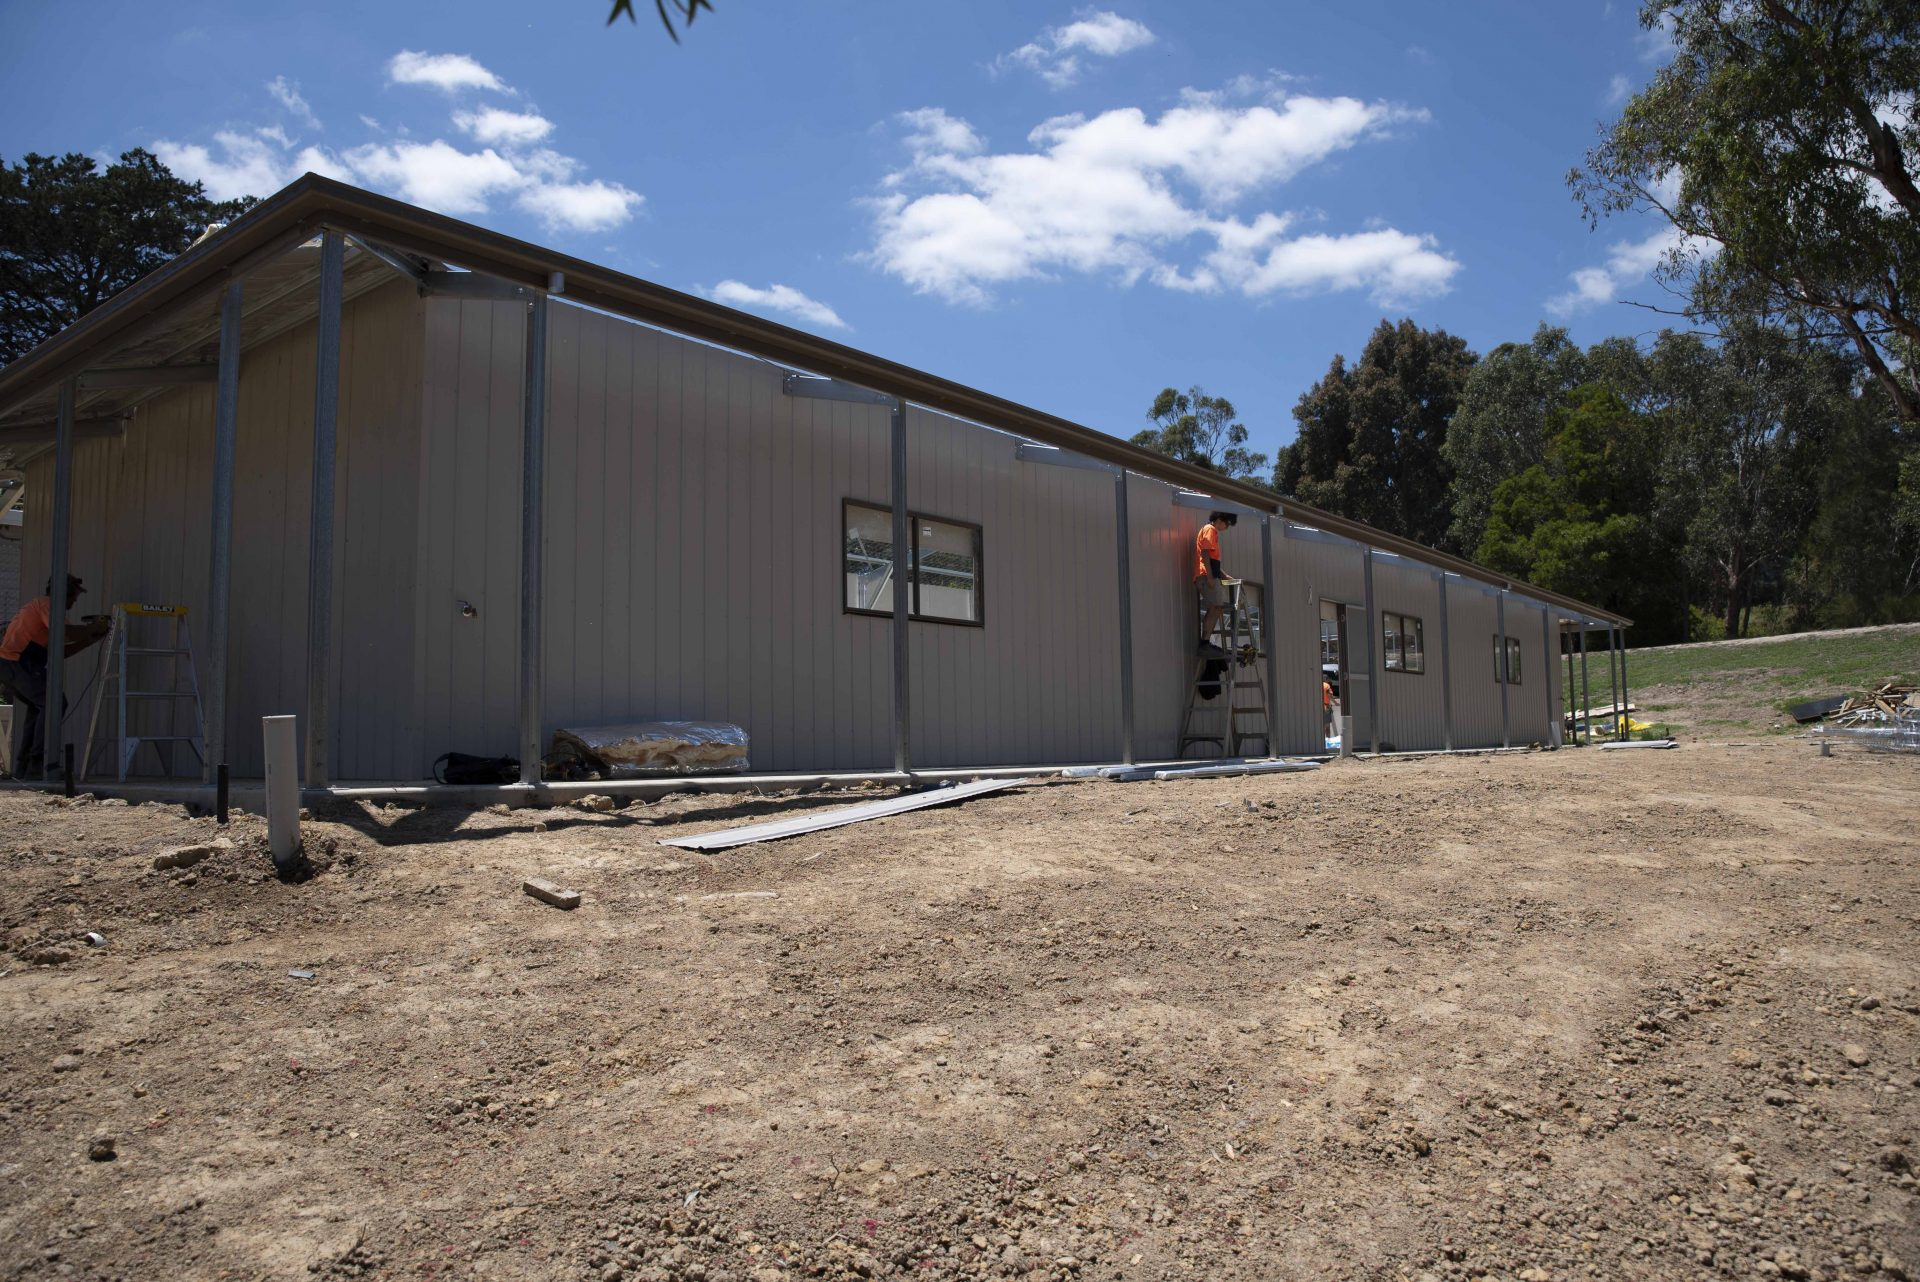 5 STAR Dog Boarding Block Almost Complete – Yarra Valley